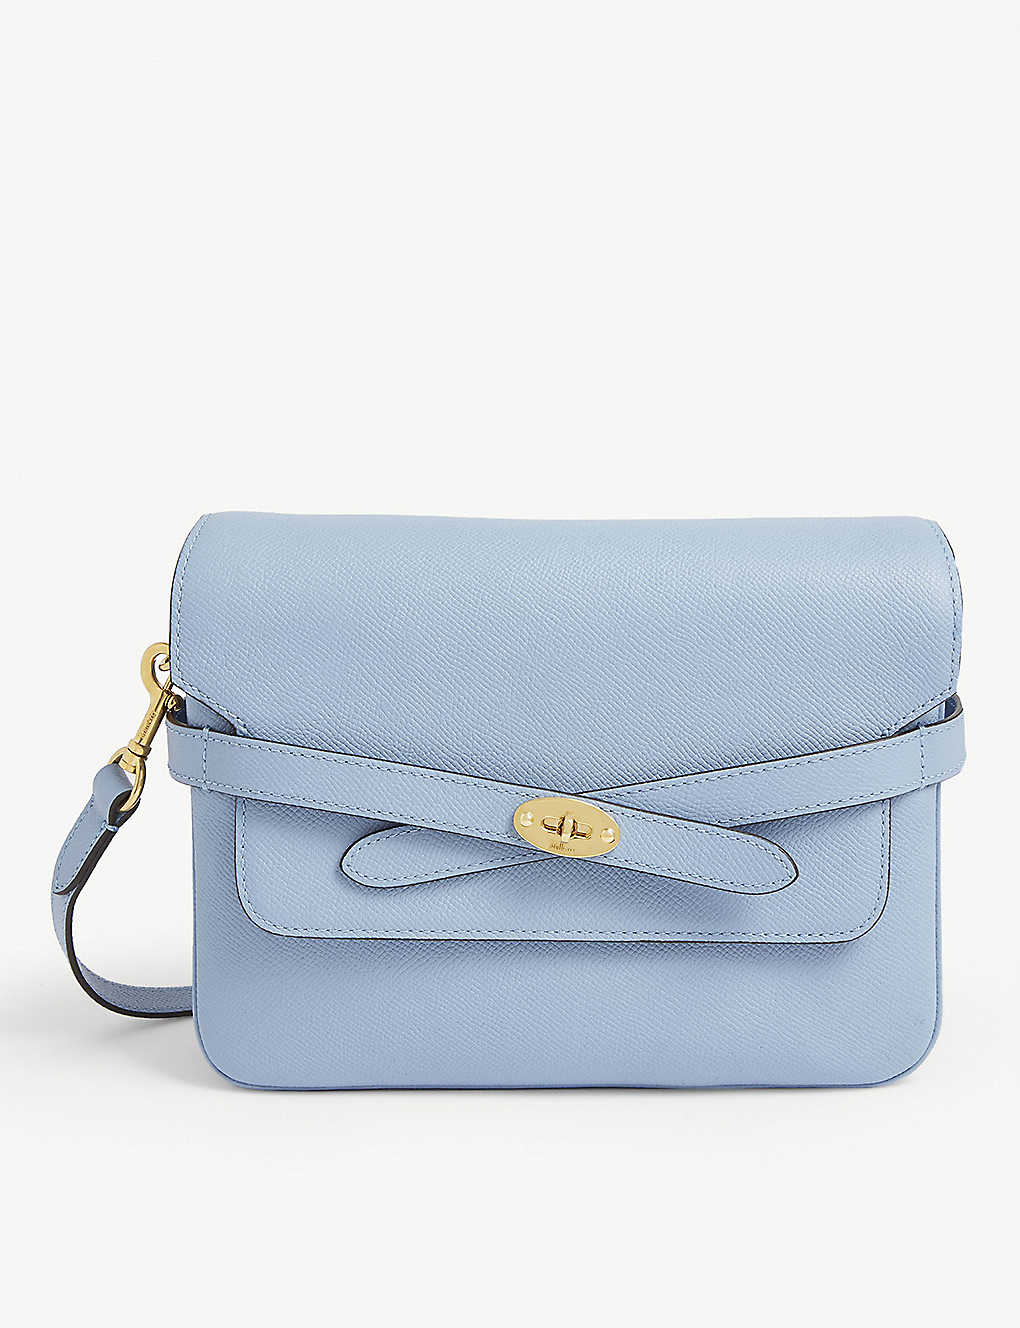 MULBERRY: Belted Bayswater leather satchel